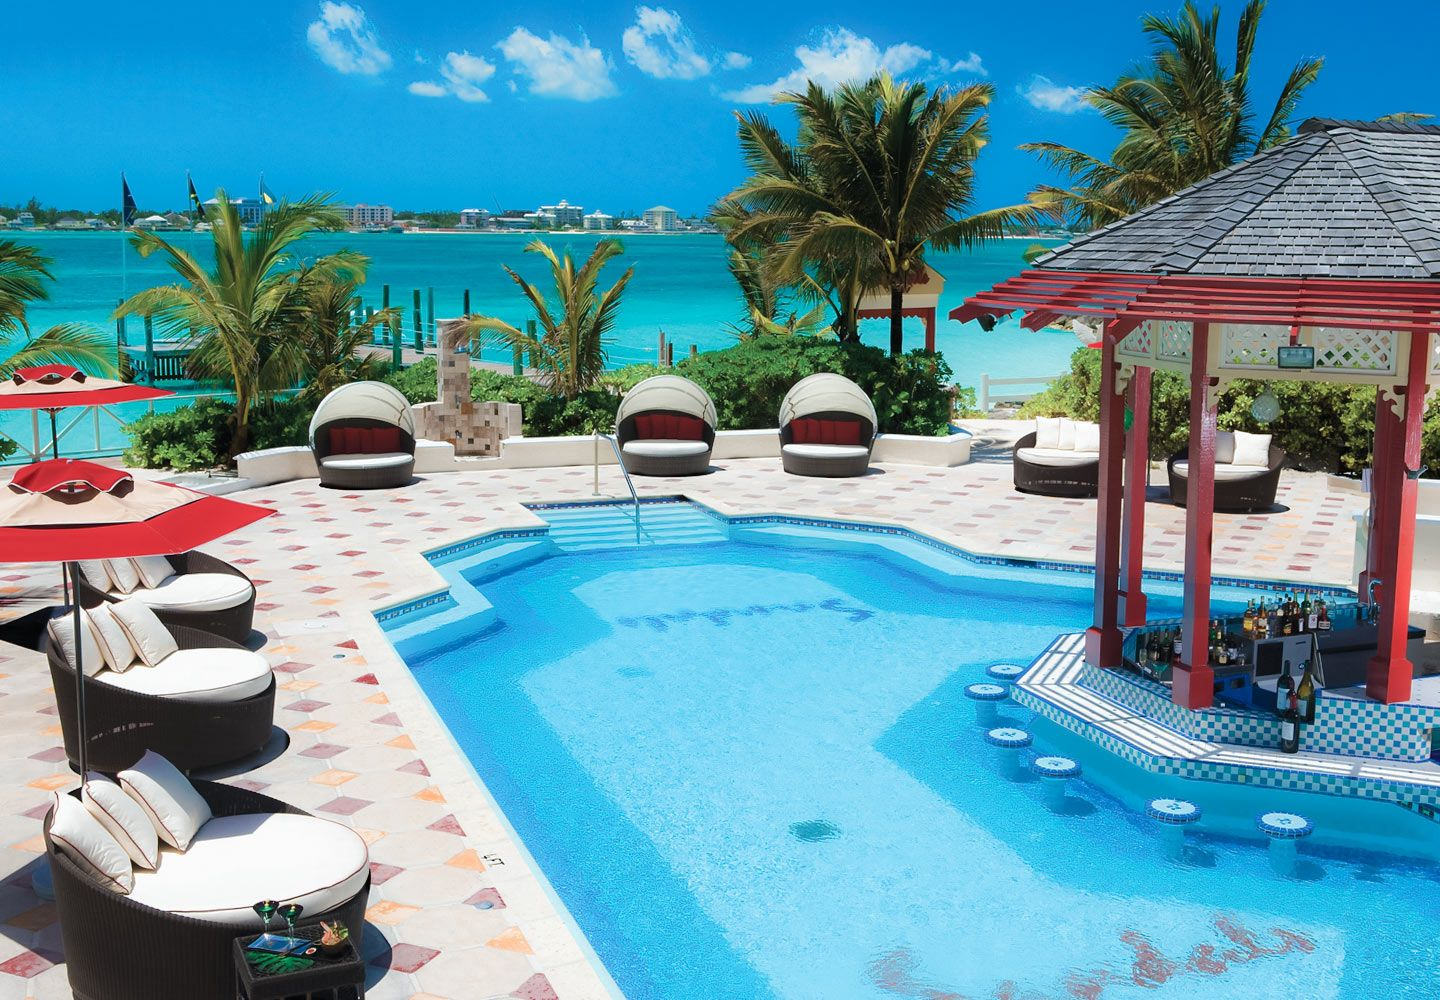 The Pool On Sandals Island Includes Our Signature Swim Up Bar